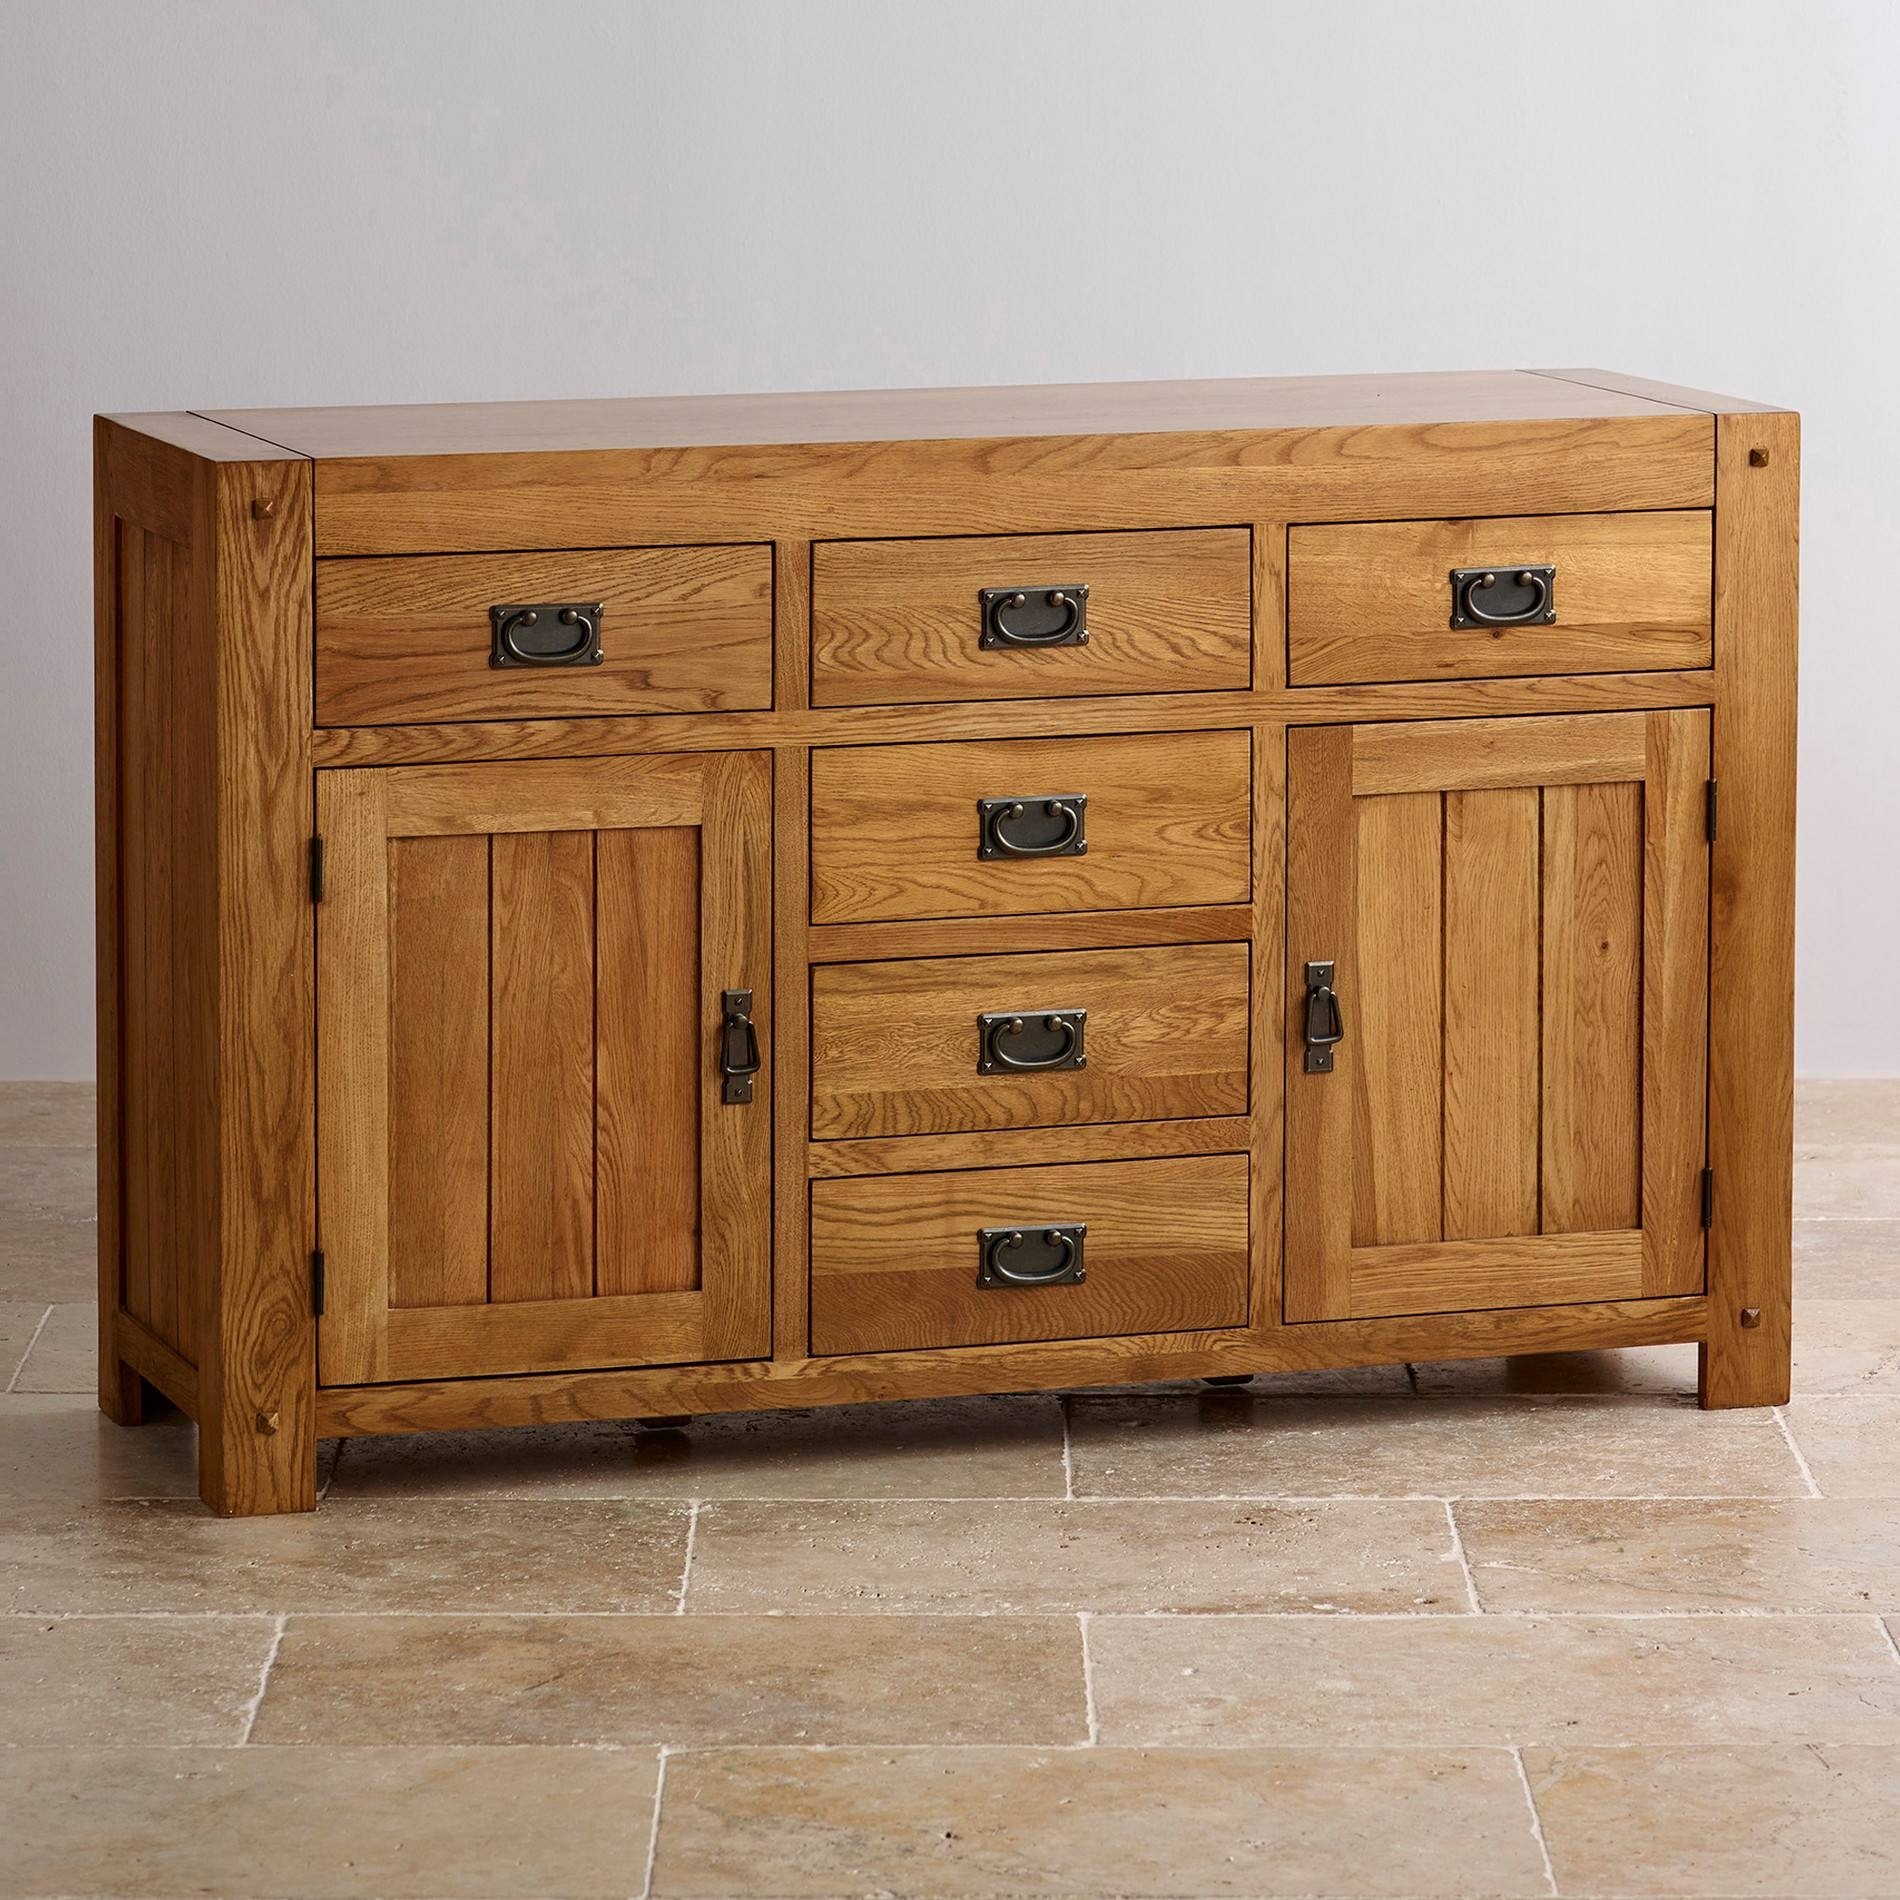 Quercus Large Sideboard | Rustic Oak | Oak Furniture Land Within Large Oak Sideboards (#11 of 15)